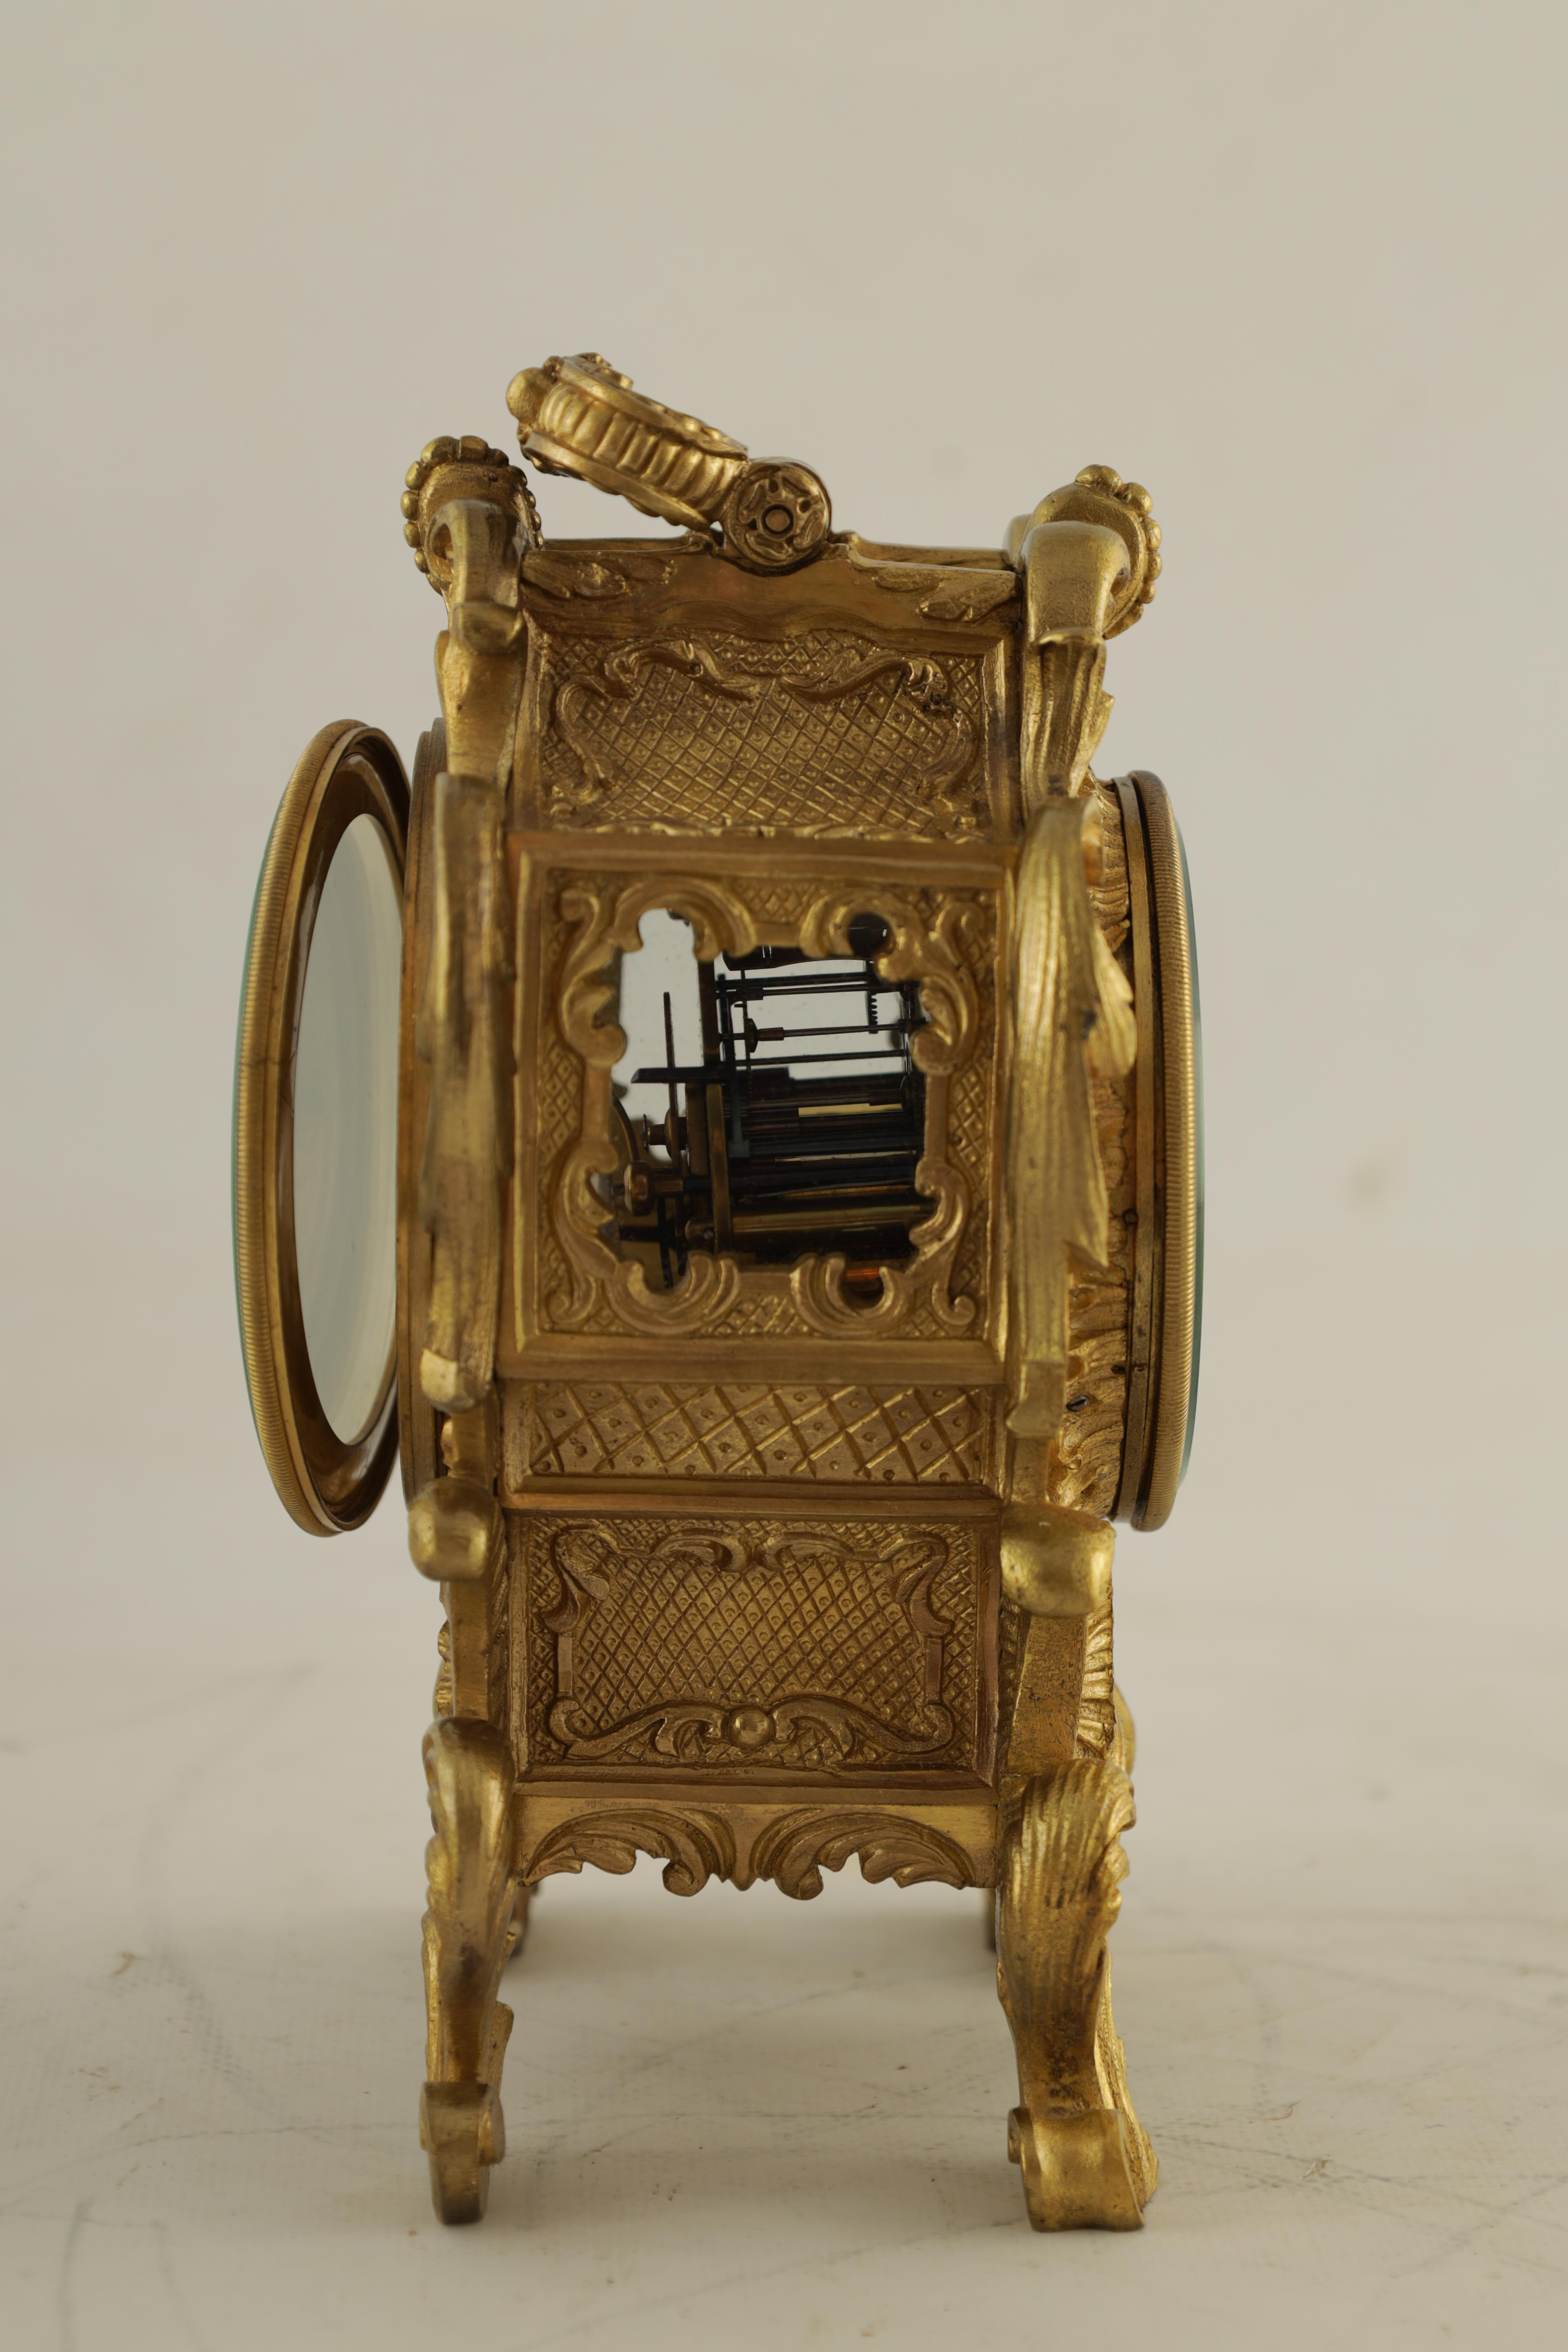 PAUL GARNIER, PARIS A MID 19TH CENTURY FRENCH TRAVELLING MANTEL CLOCK the gilt bronze rococo style - Image 9 of 13